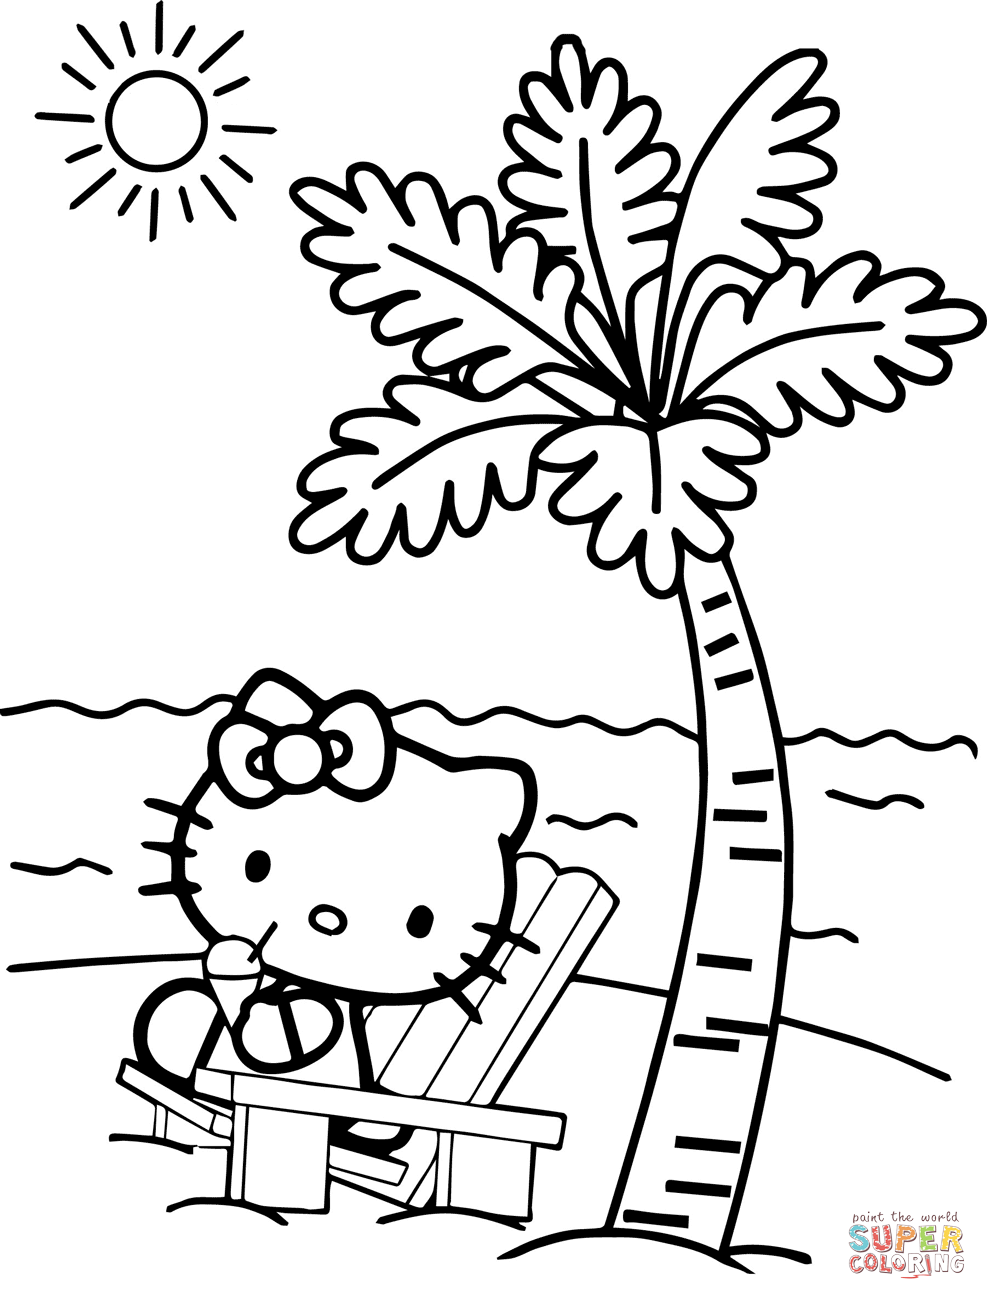 rainbow hello kitty coloring pages 9 rainbow coloring pages jpg ai illustrator download kitty coloring rainbow pages hello